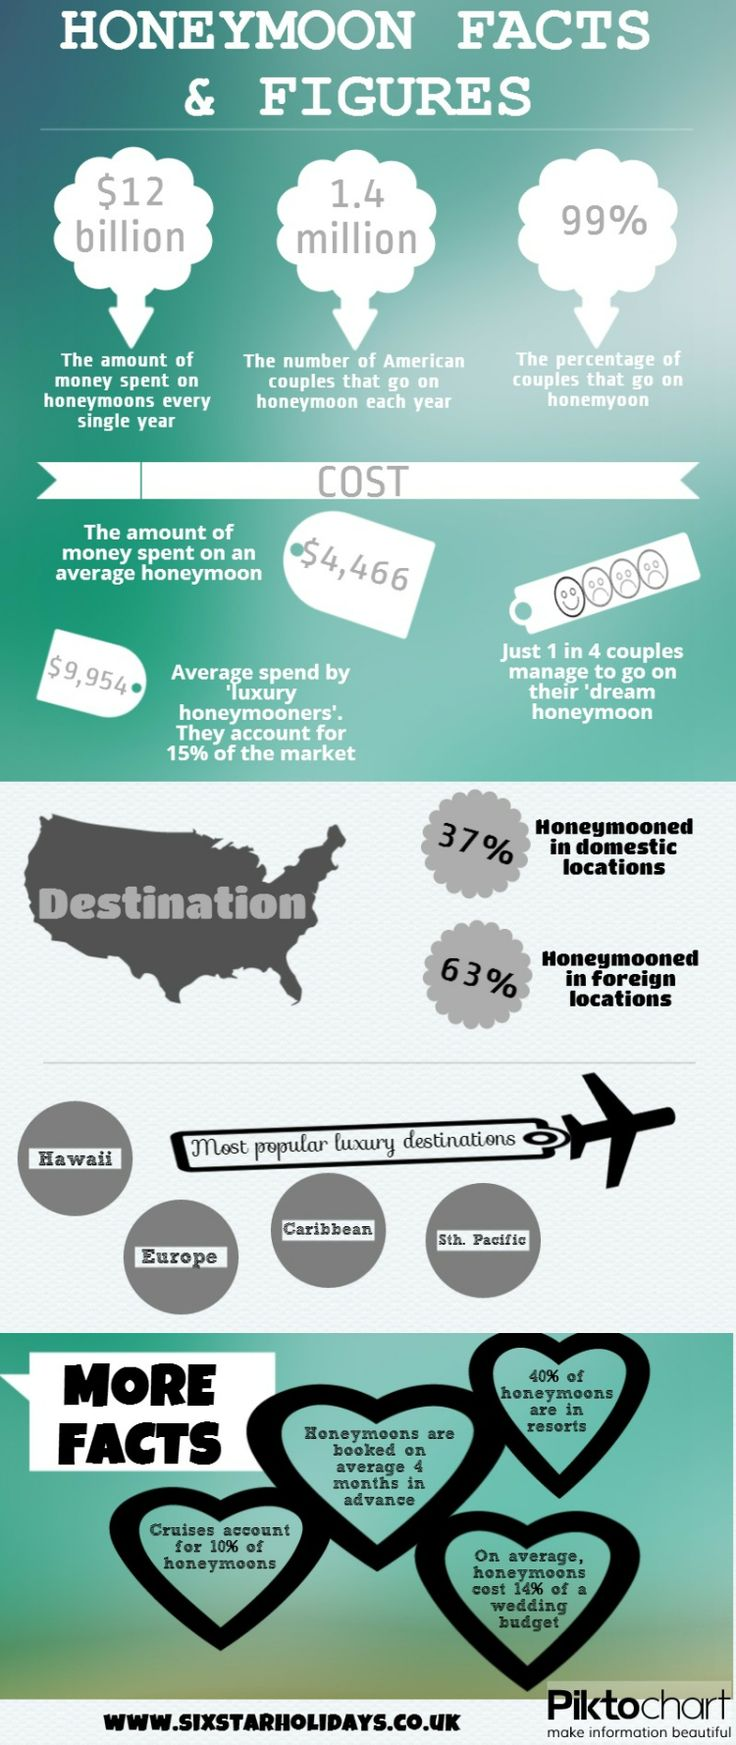 All the vital facts and figures that you need to know about the #honeymoon industry!